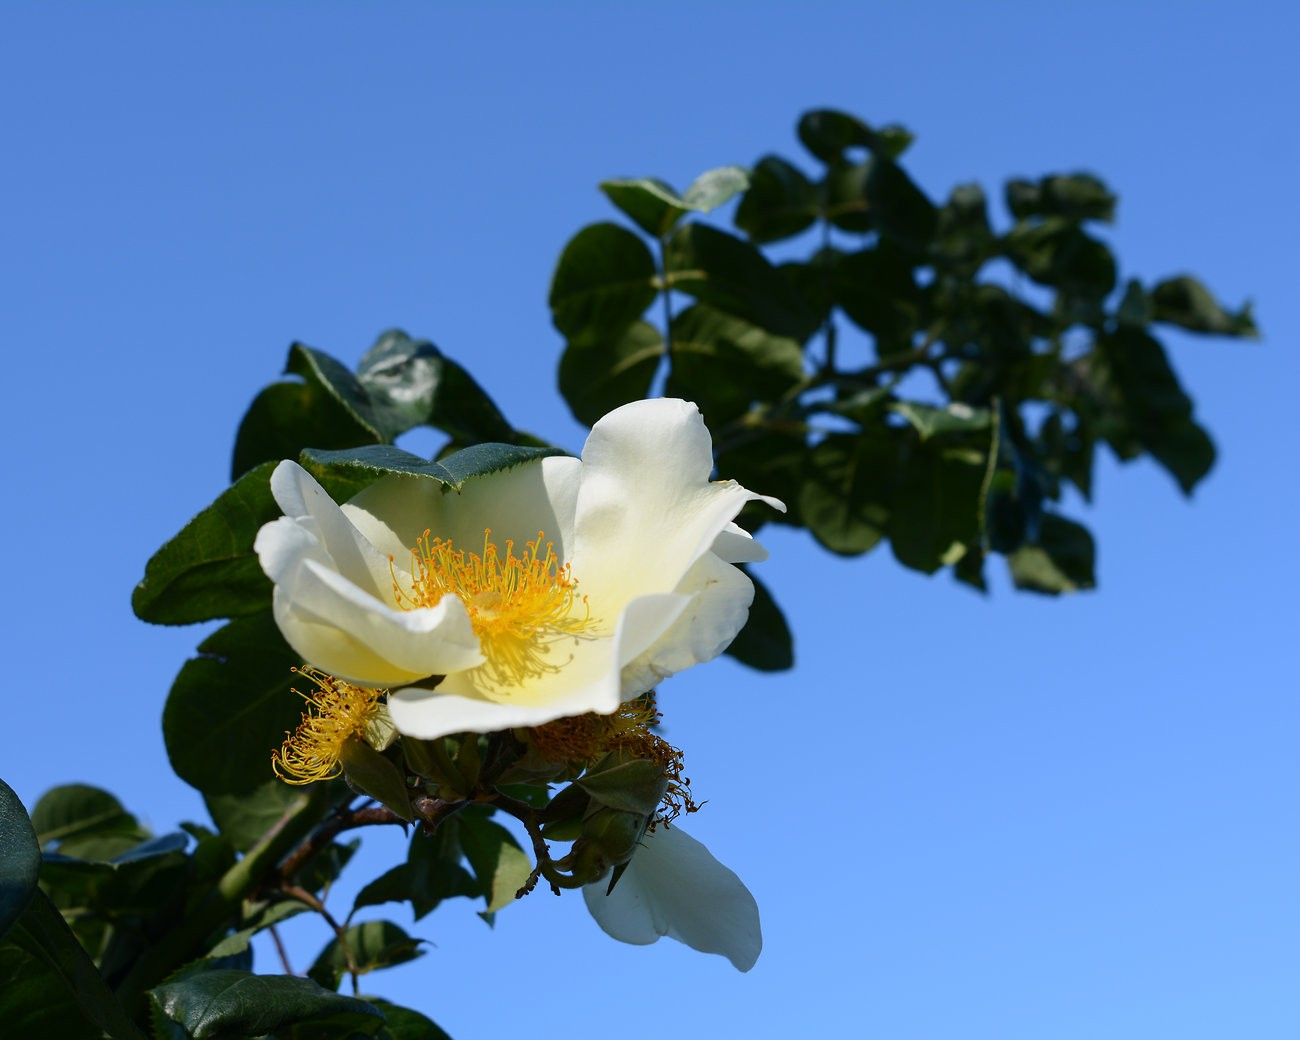 rose_Nid24_D7100_Sept19.jpg